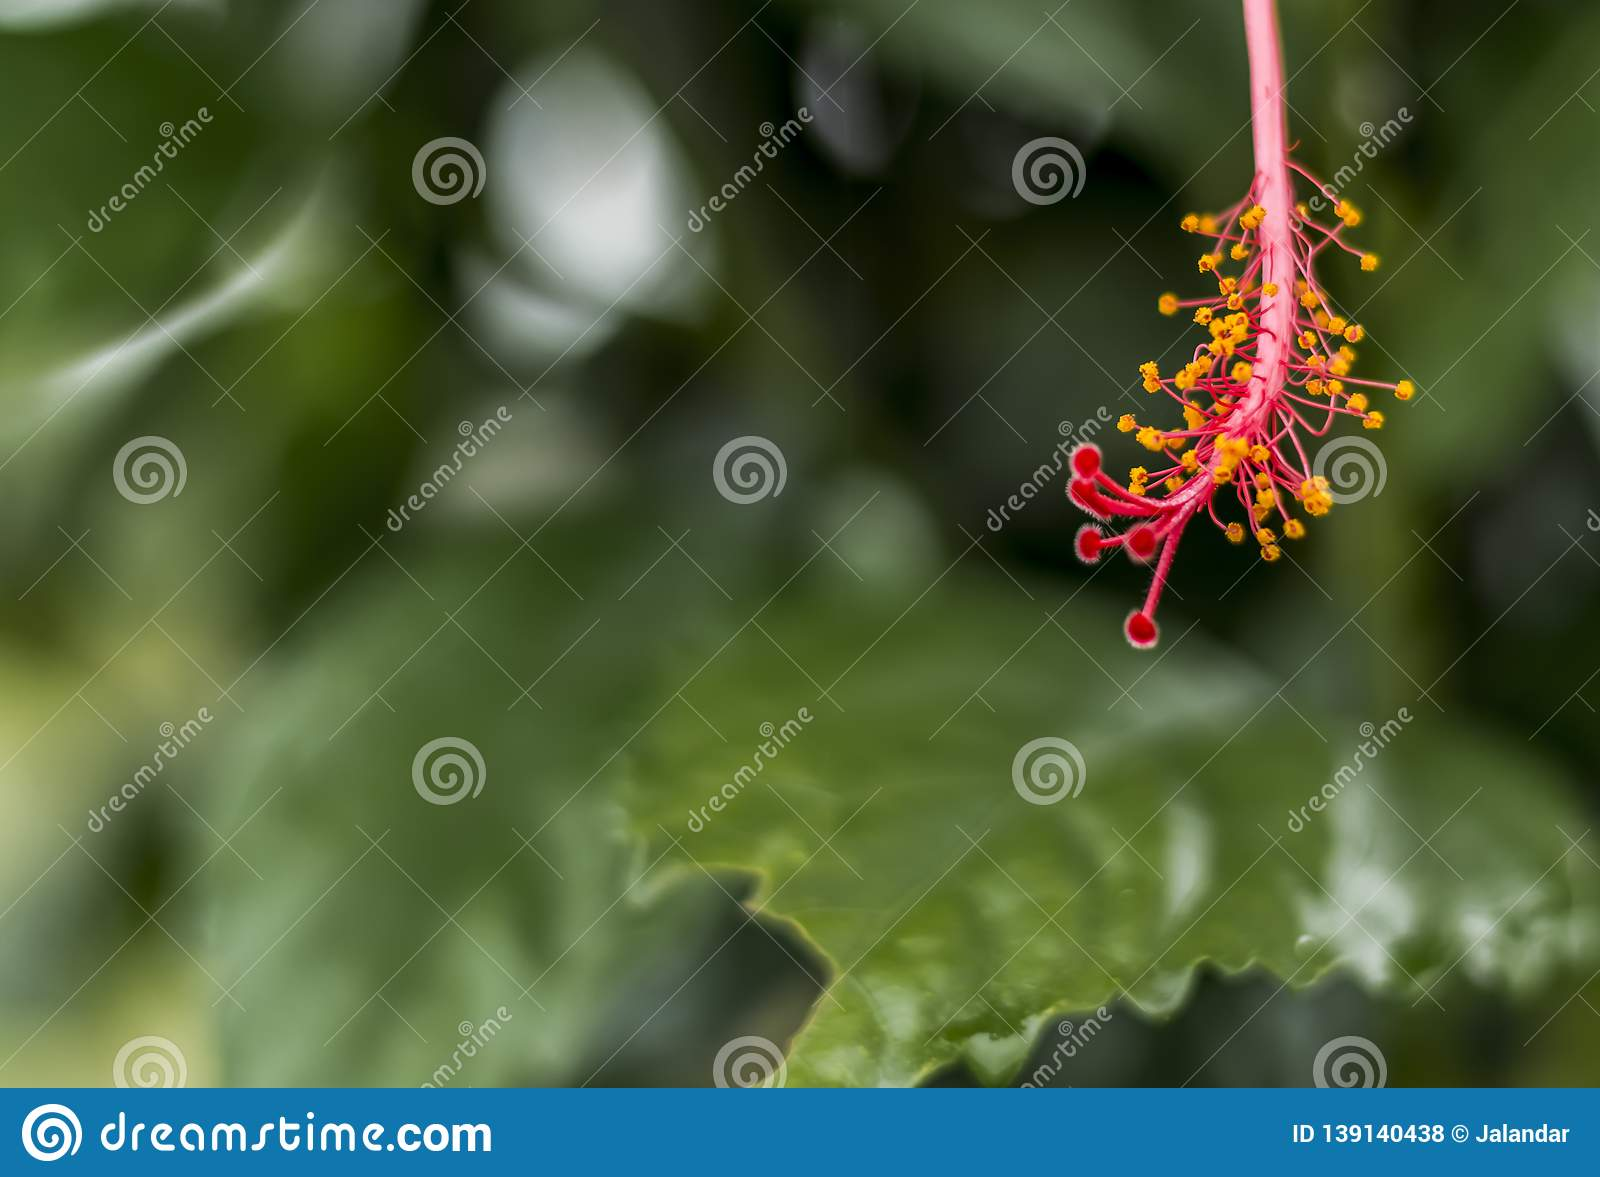 Stigma Style Of A Hibiscus Flower Stock Photo Image Of Bush